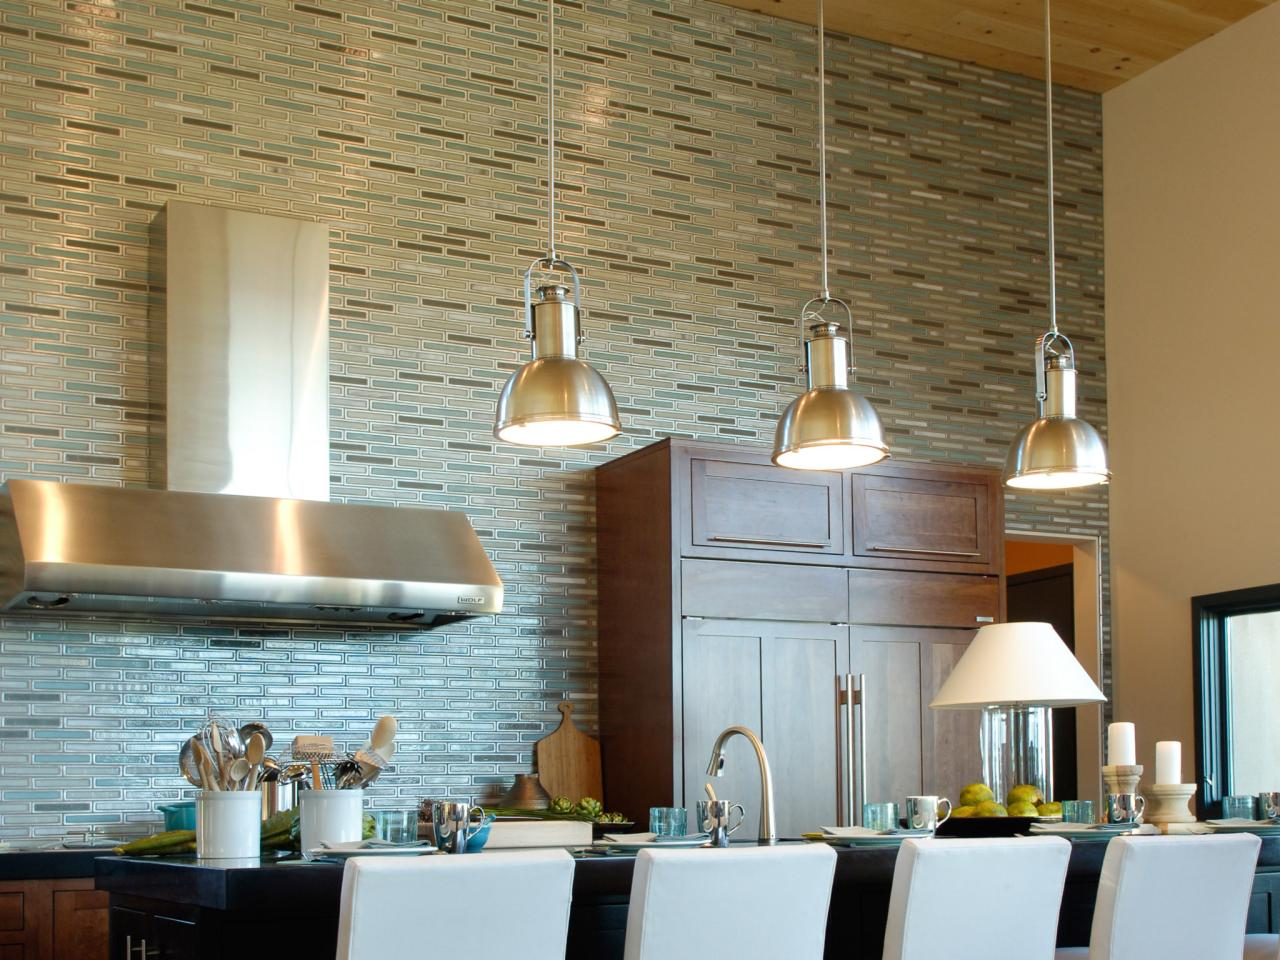 Tile backsplash ideas pictures tips from hgtv hgtv for Kitchen tiles pictures